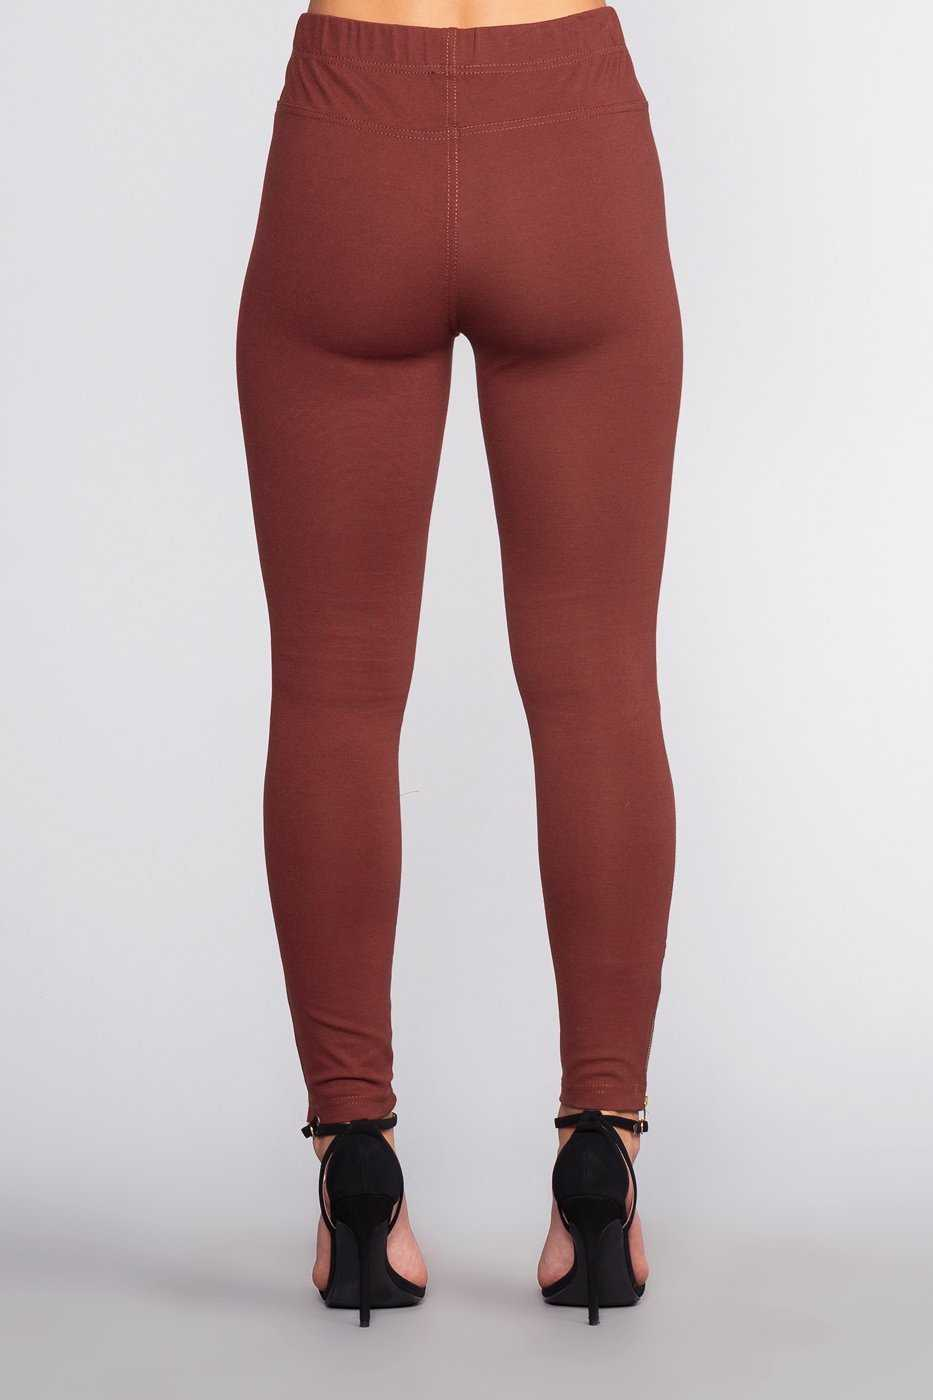 Leggings - Jaxon Moto Jeggings - Burgundy